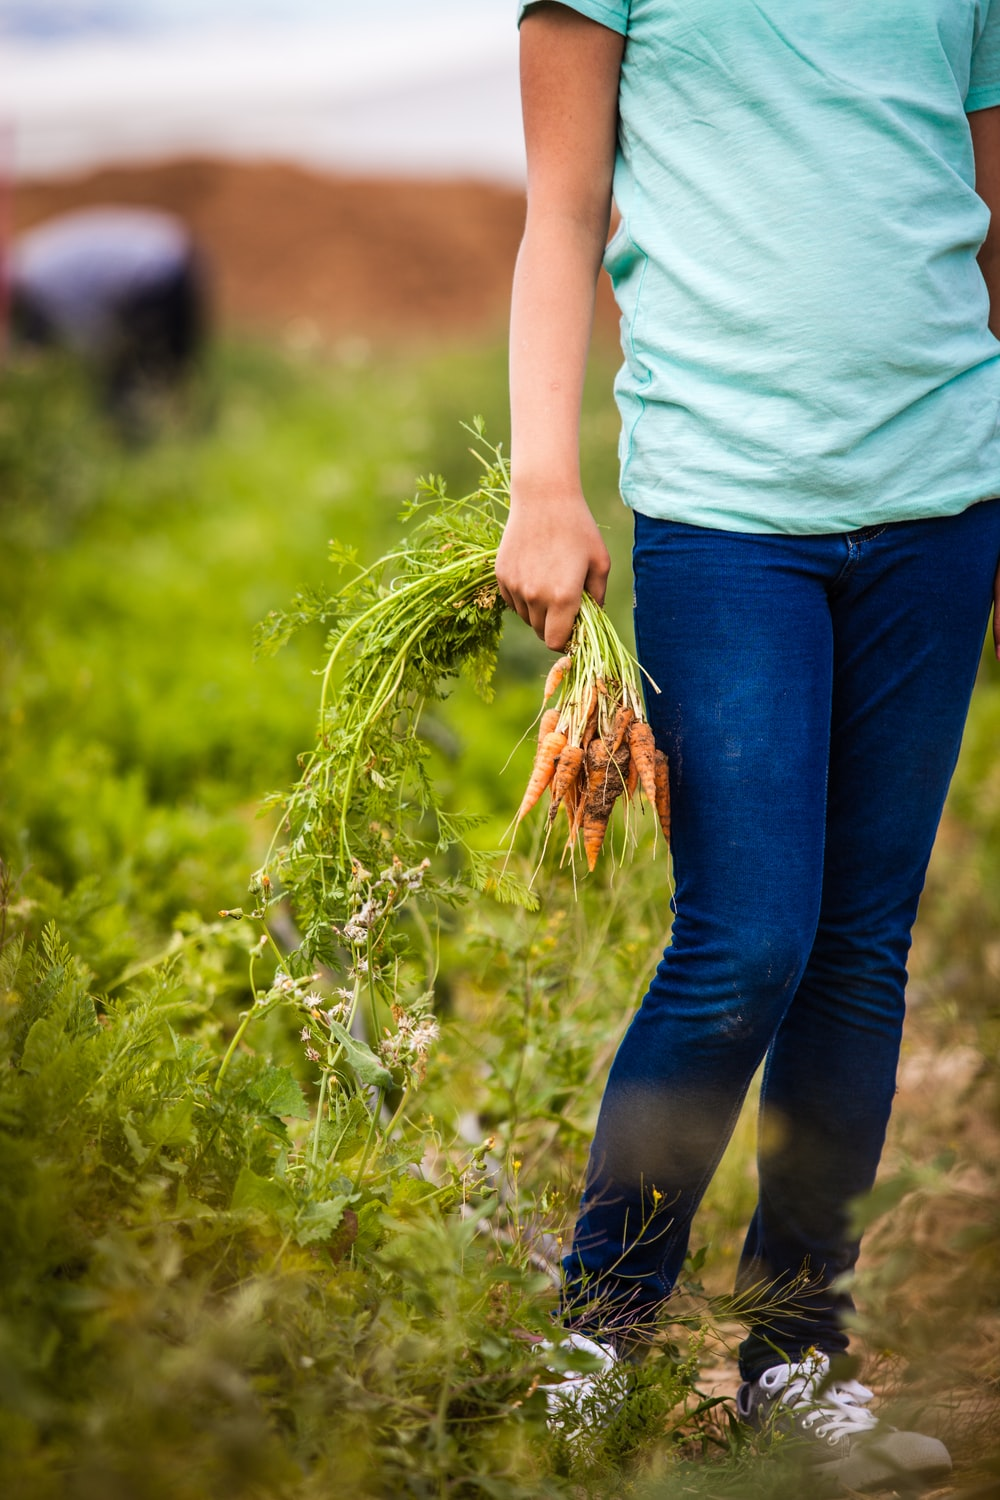 person picking carrots outdoor during daytime